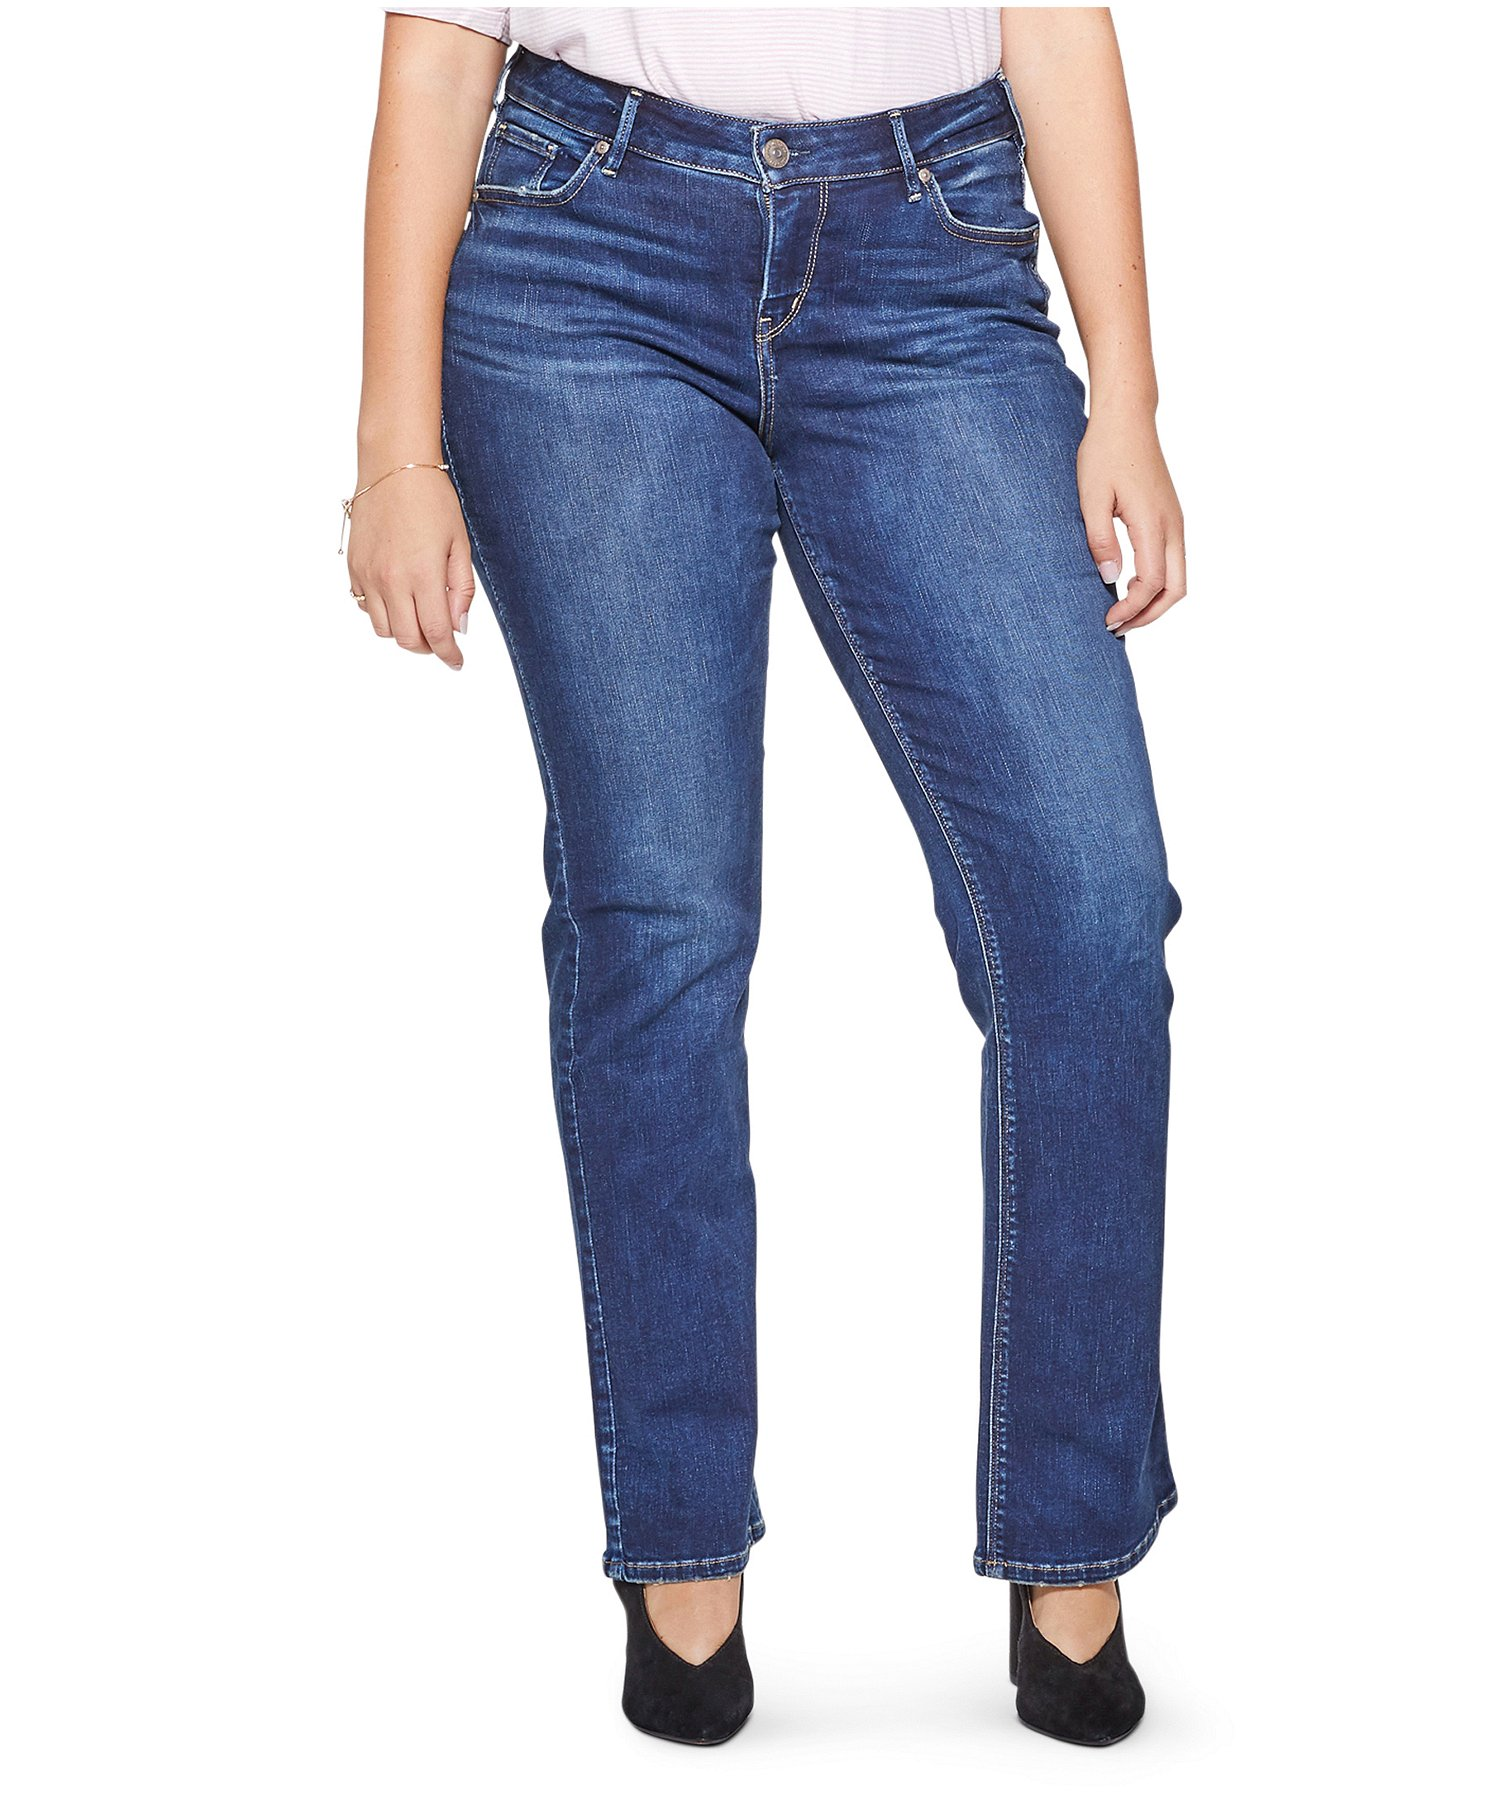 Silver Jeans Co Womens Plus Size Avery Curvy Fit High Rise Slim Leg Jeans